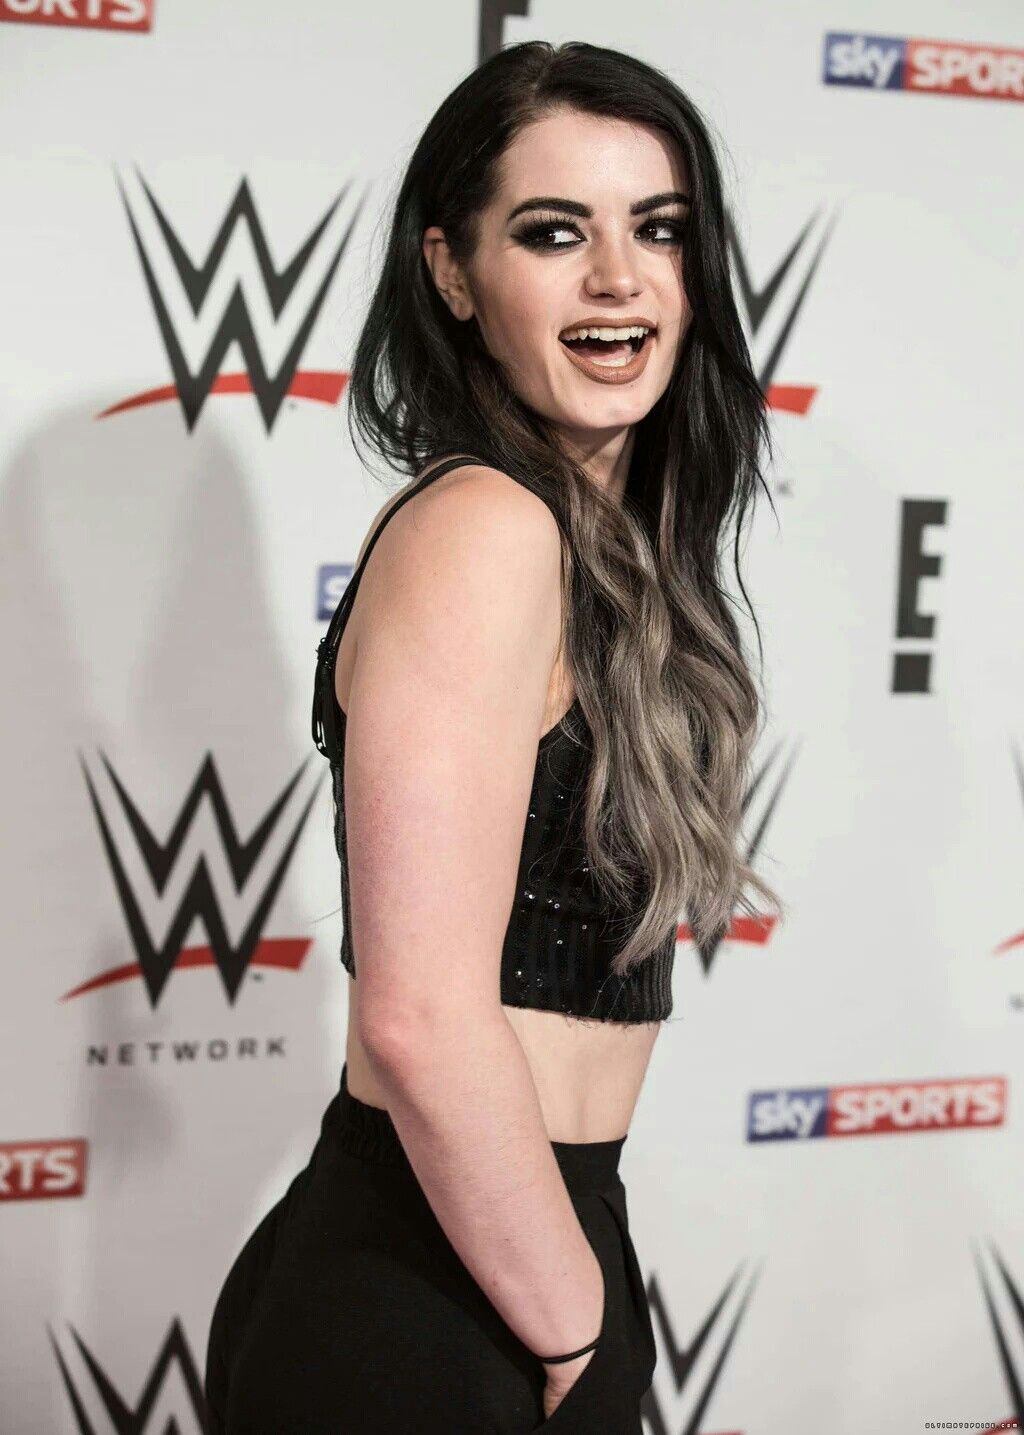 Pin by evelyn barrientez on wwe women pinterest paige wwe and wrestling wwe - Diva paige sex tape ...